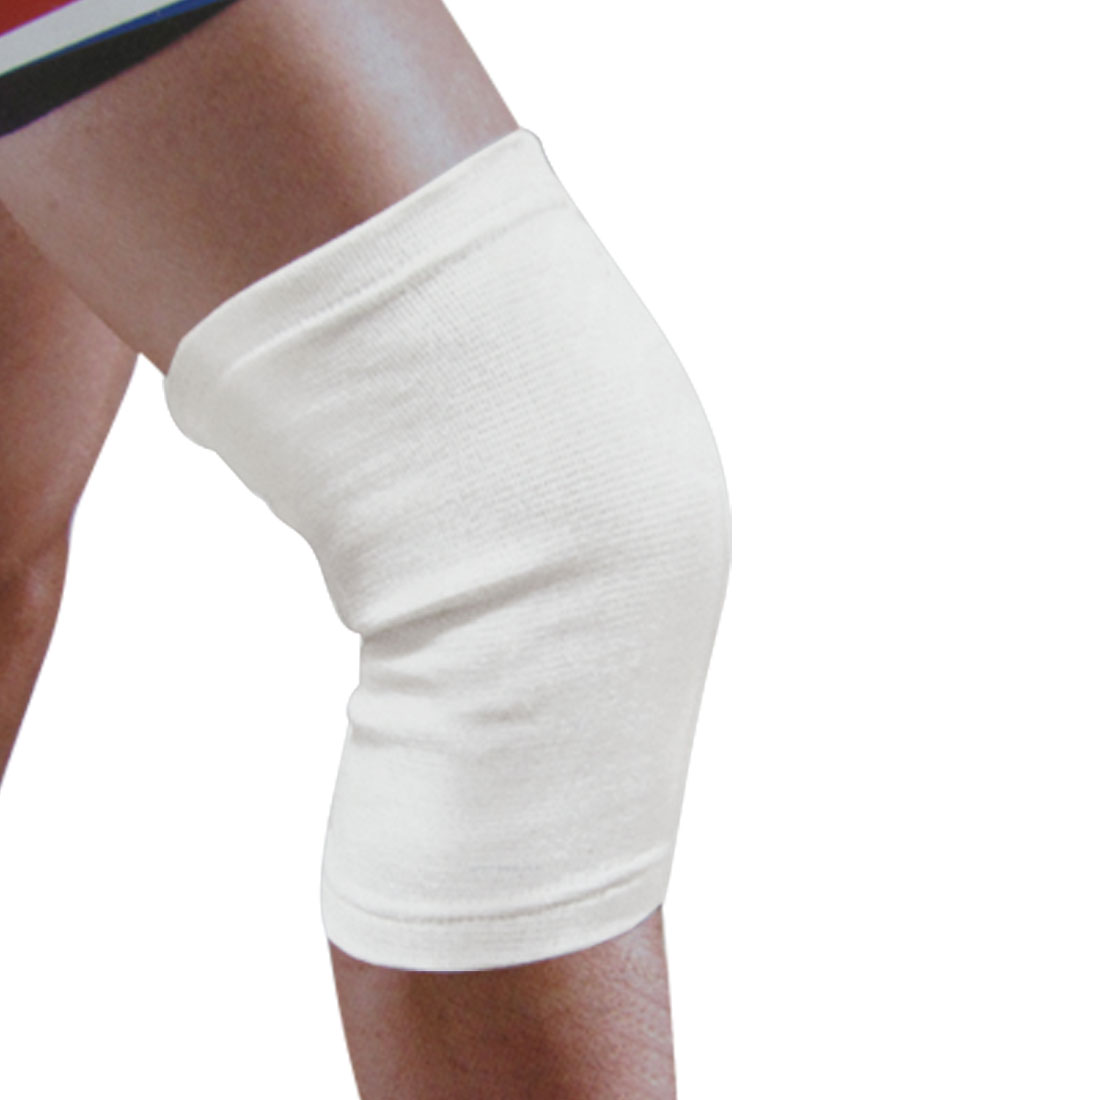 Gym Exercise White Sleeve Stretchy Knee Support Brace